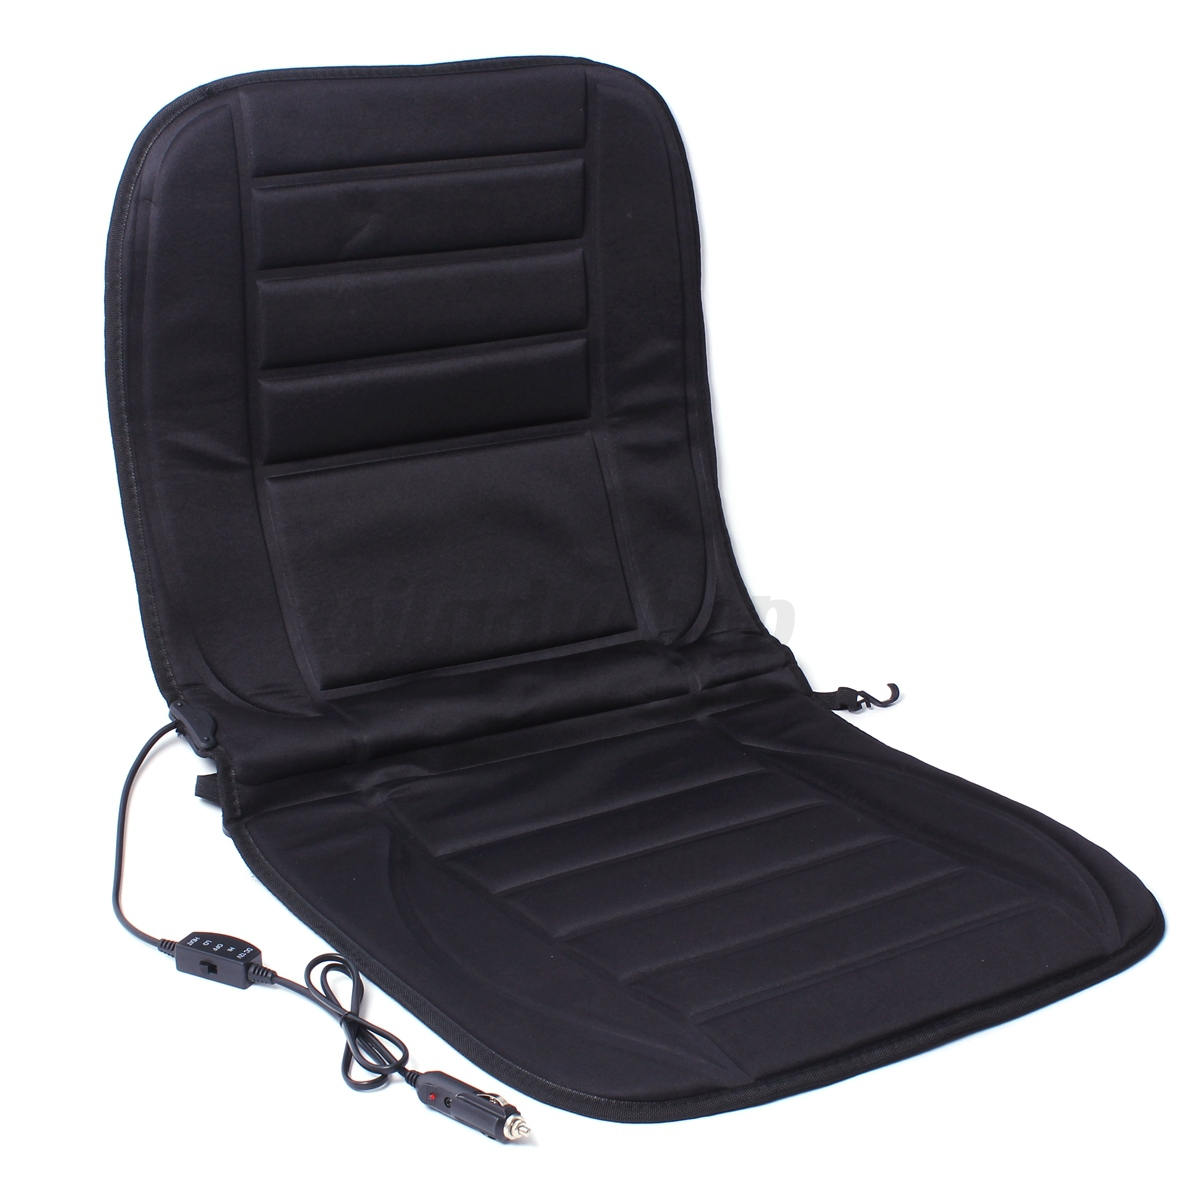 pair 12v winter warmer heat car heated seat cushion hot cover heating pad winter ebay. Black Bedroom Furniture Sets. Home Design Ideas